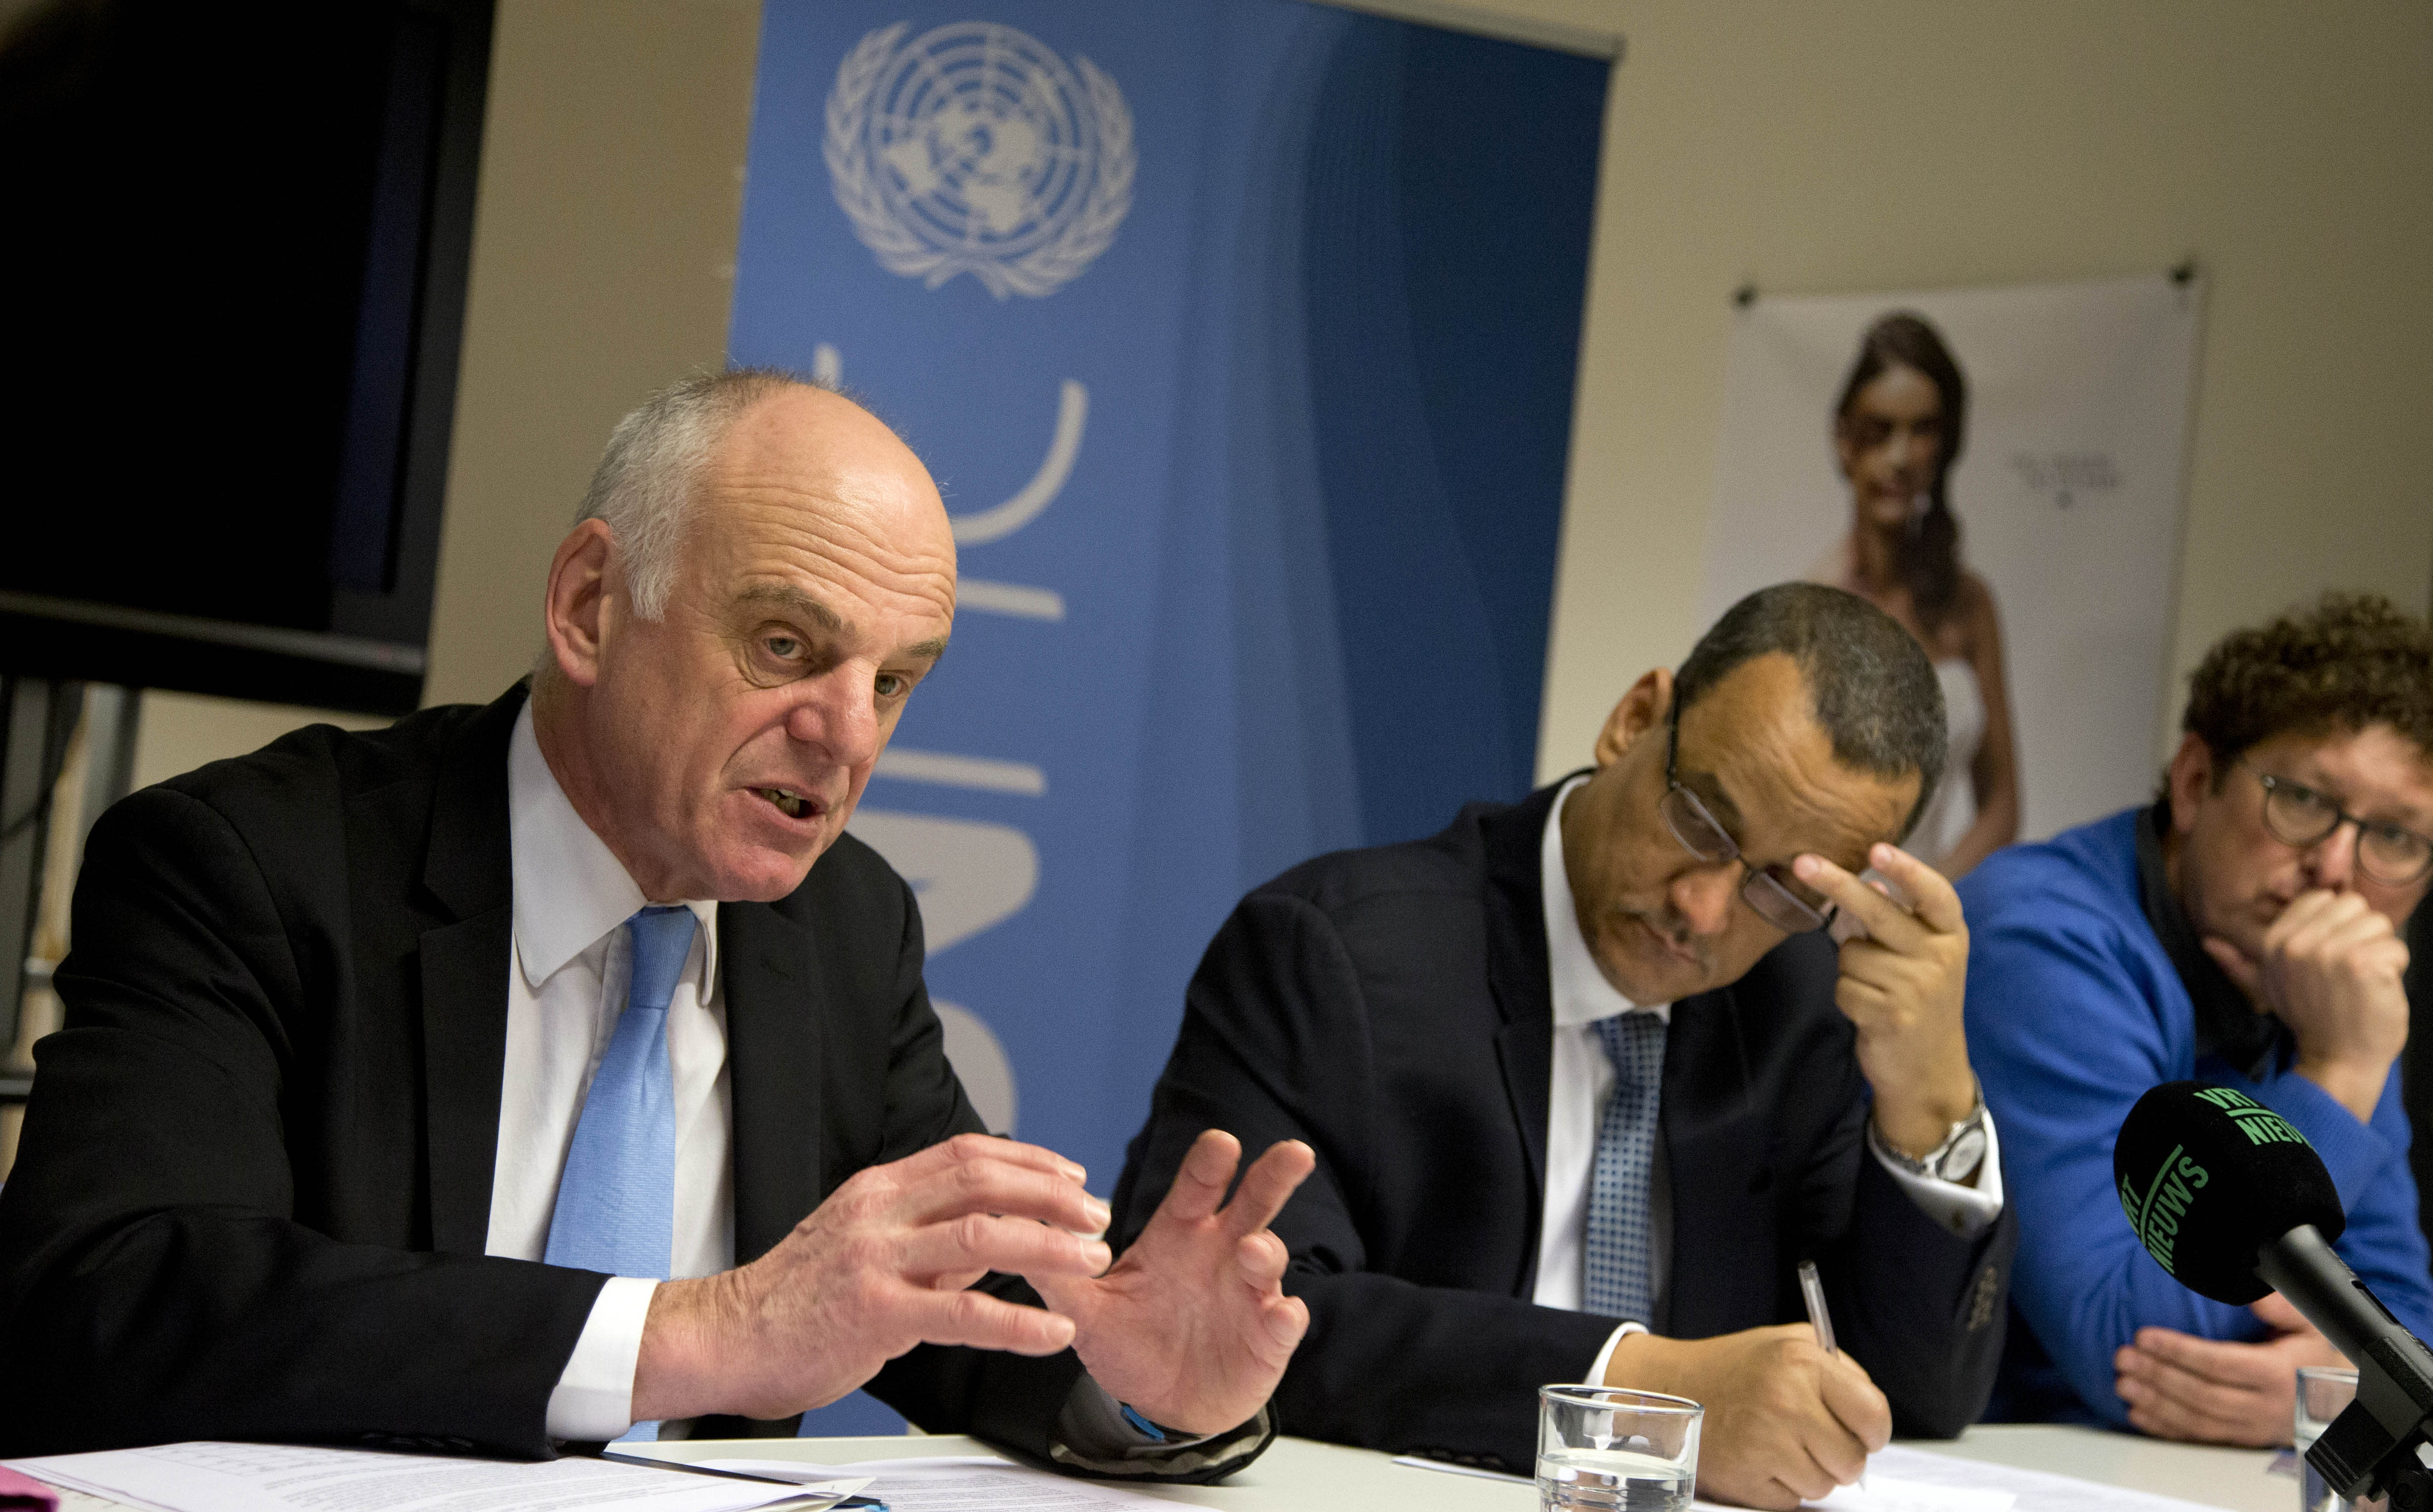 UN warns against complacency as Ebola fight enters new phase